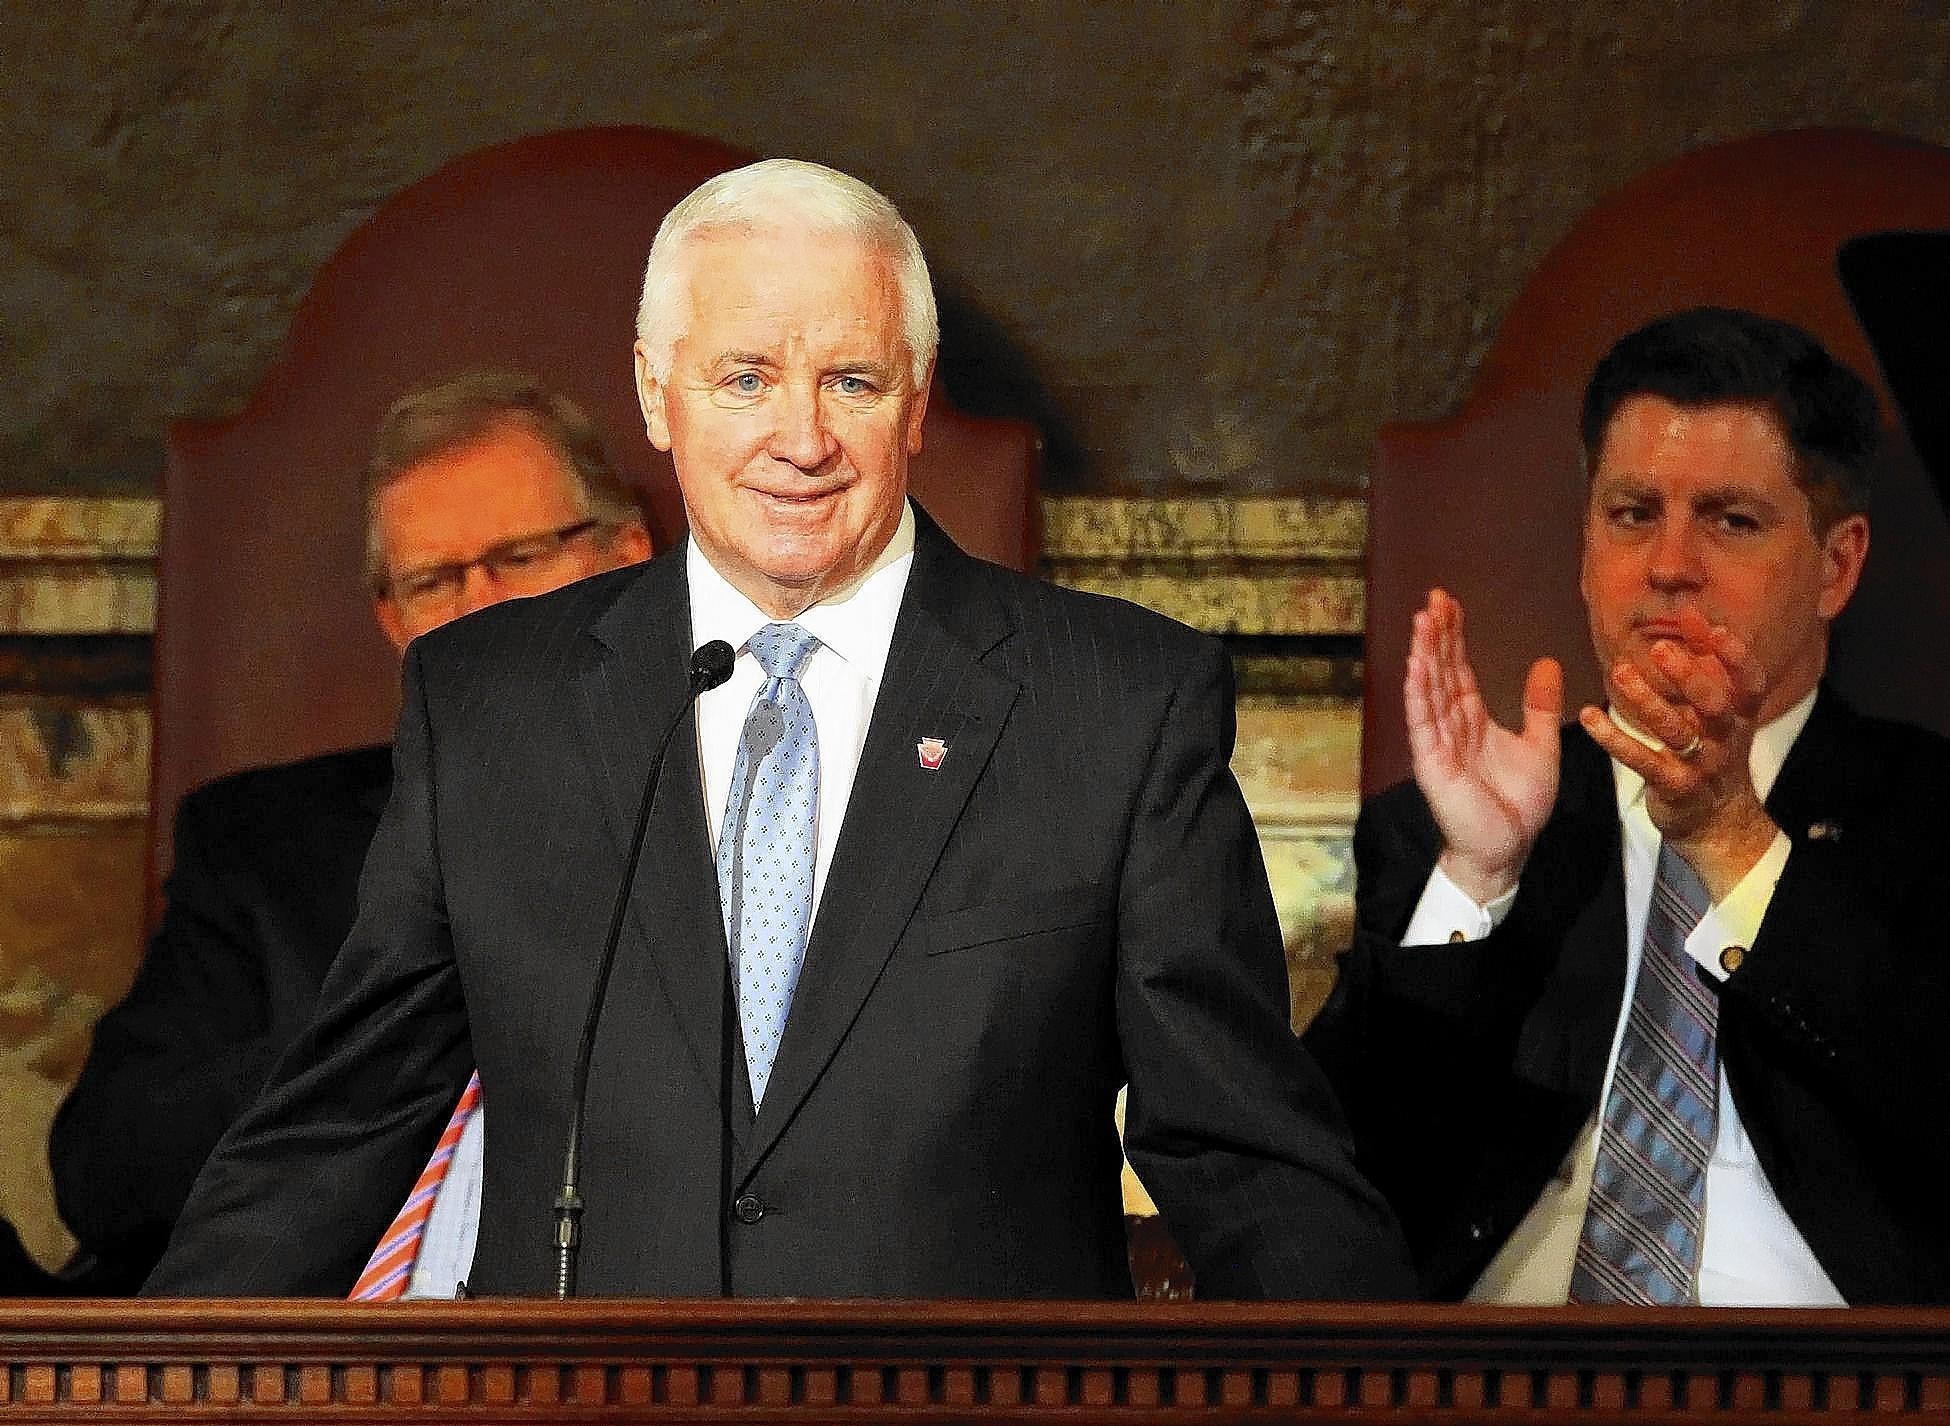 Governor Tom Corbett will undergo hernia surgery on Thursday.